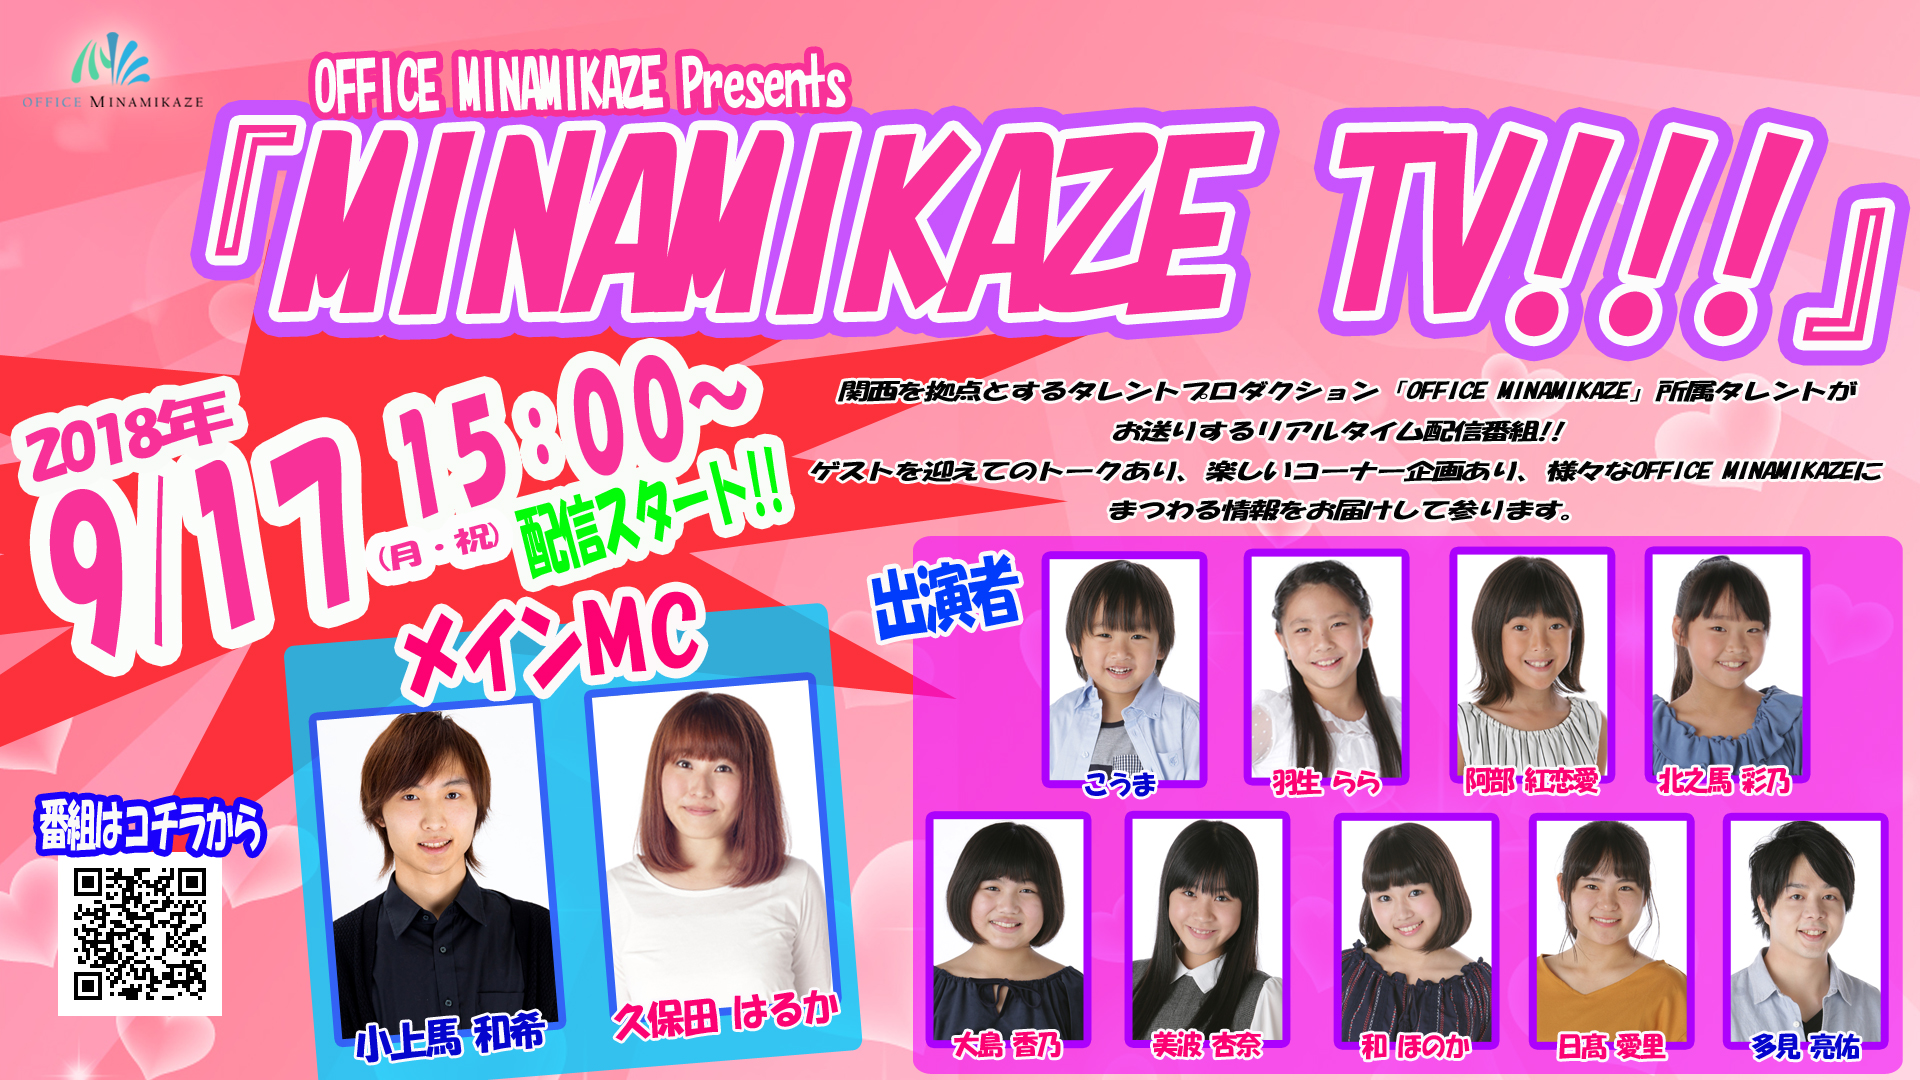 【出演情報】2018年9月17日(月・祝)OFFICE MINAMIKAZE Presents by FRESH!「MINAMIKAZE TV!!!」